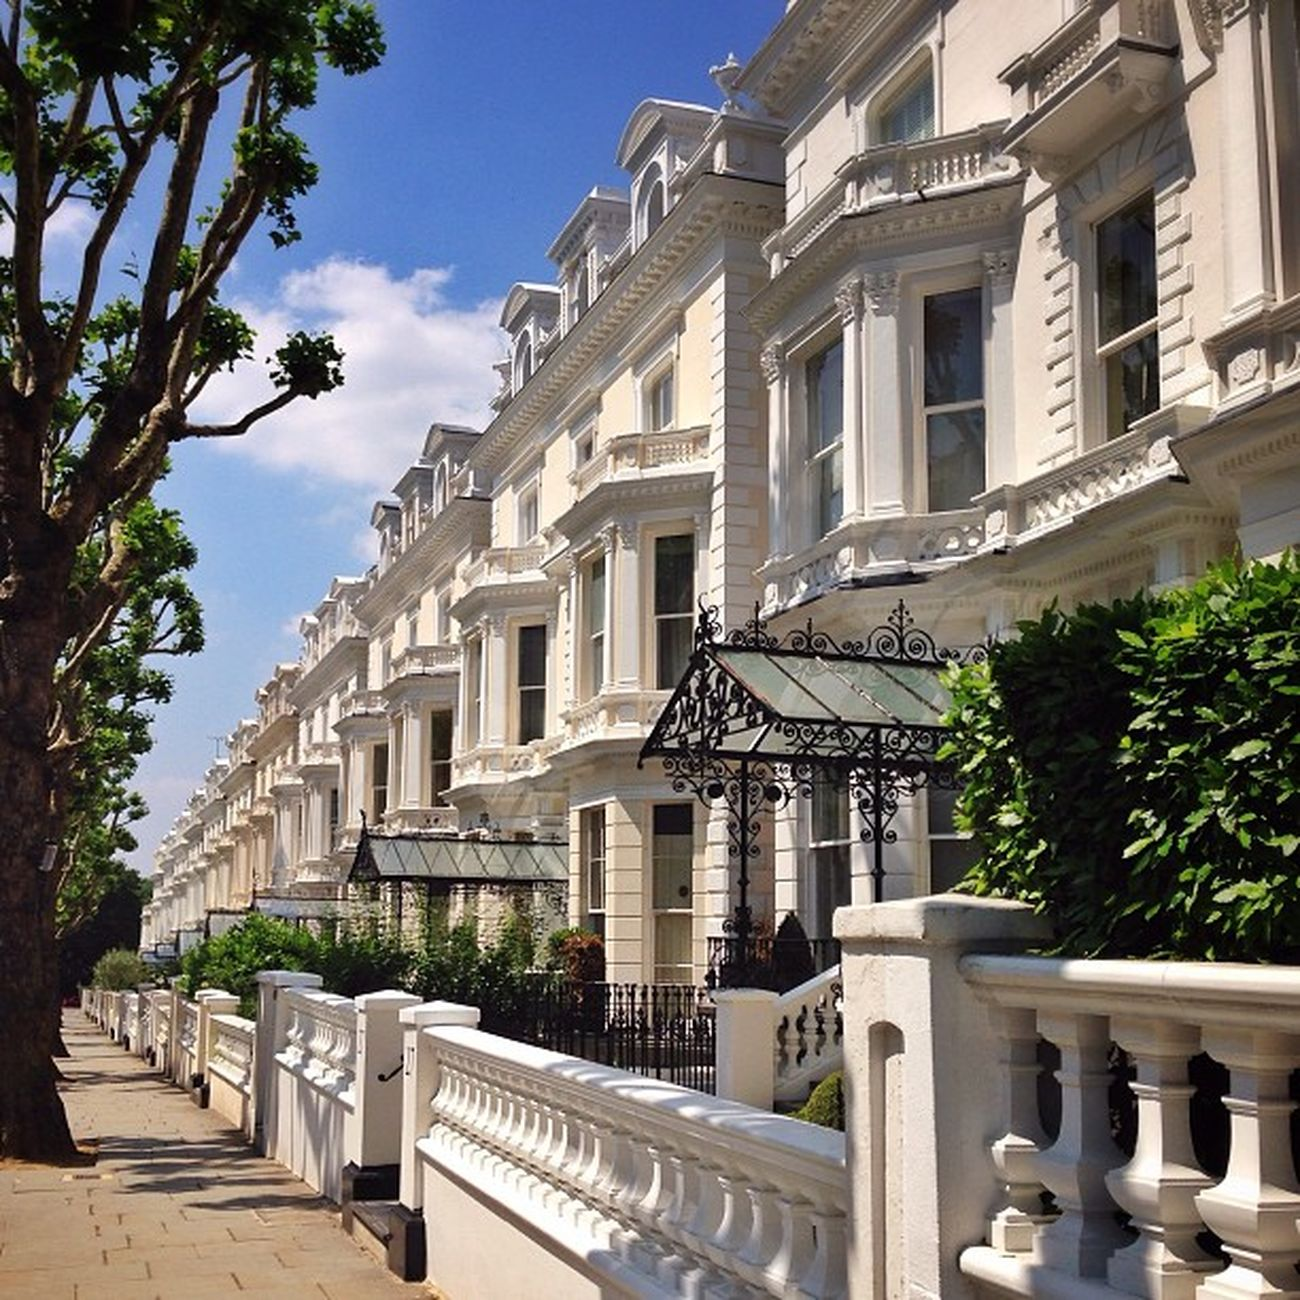 Hallo to new #followers, if you miss #London in my feed, here is one shot from #summer #kensington ????☀️ #alan_in_london #gf_uk #gang_family #igers_london #insta_london #london_only #thisislondon #ic_cities #ic_cities_london #ig_england #love_london #gi_ Igers_london Ig_england Summer Love_london London Ic_cities_london Gang_family Ig_london Followers Aauk Kensington Yourturnbritain Londonpop From_city Allshots_ London_only Ic_cities Gf_uk Alan_in_london Insta_london Thisislondon Gi_uk